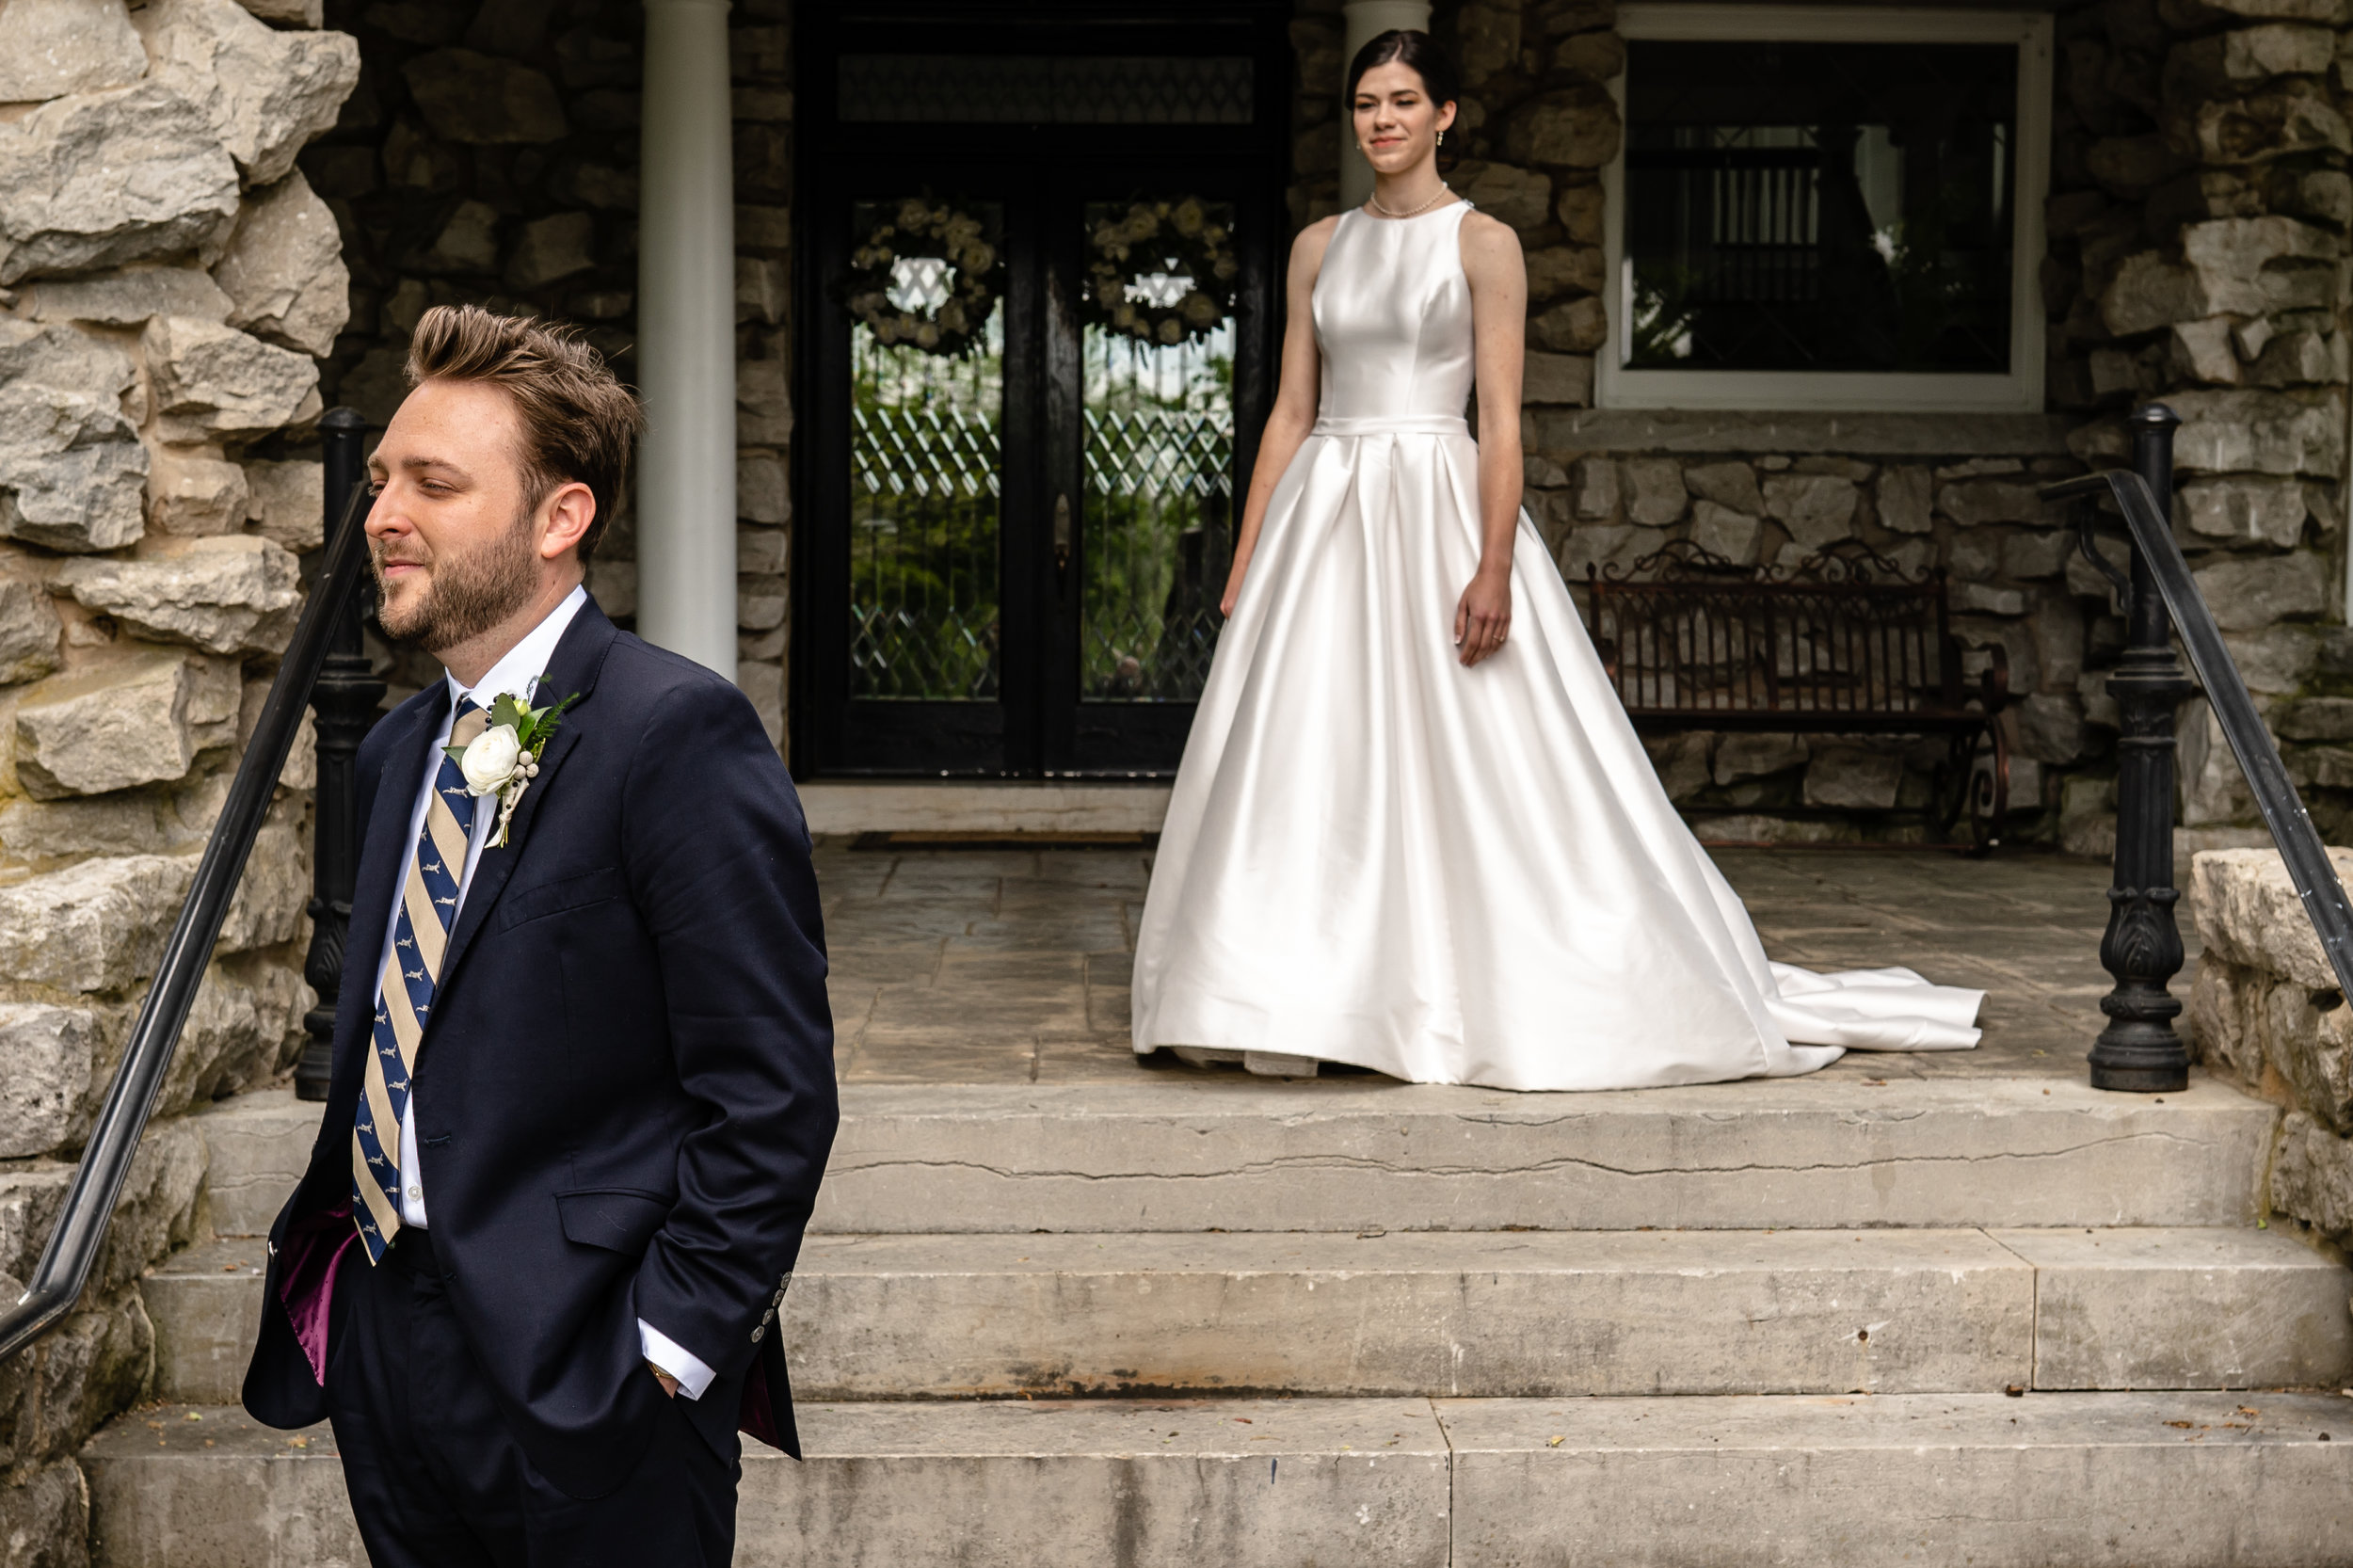 This emotional first look on this intentional wedding day was coordinated by the talented photographer and creative wedding planner at Haseltine Estate in Springfield, Missouri.